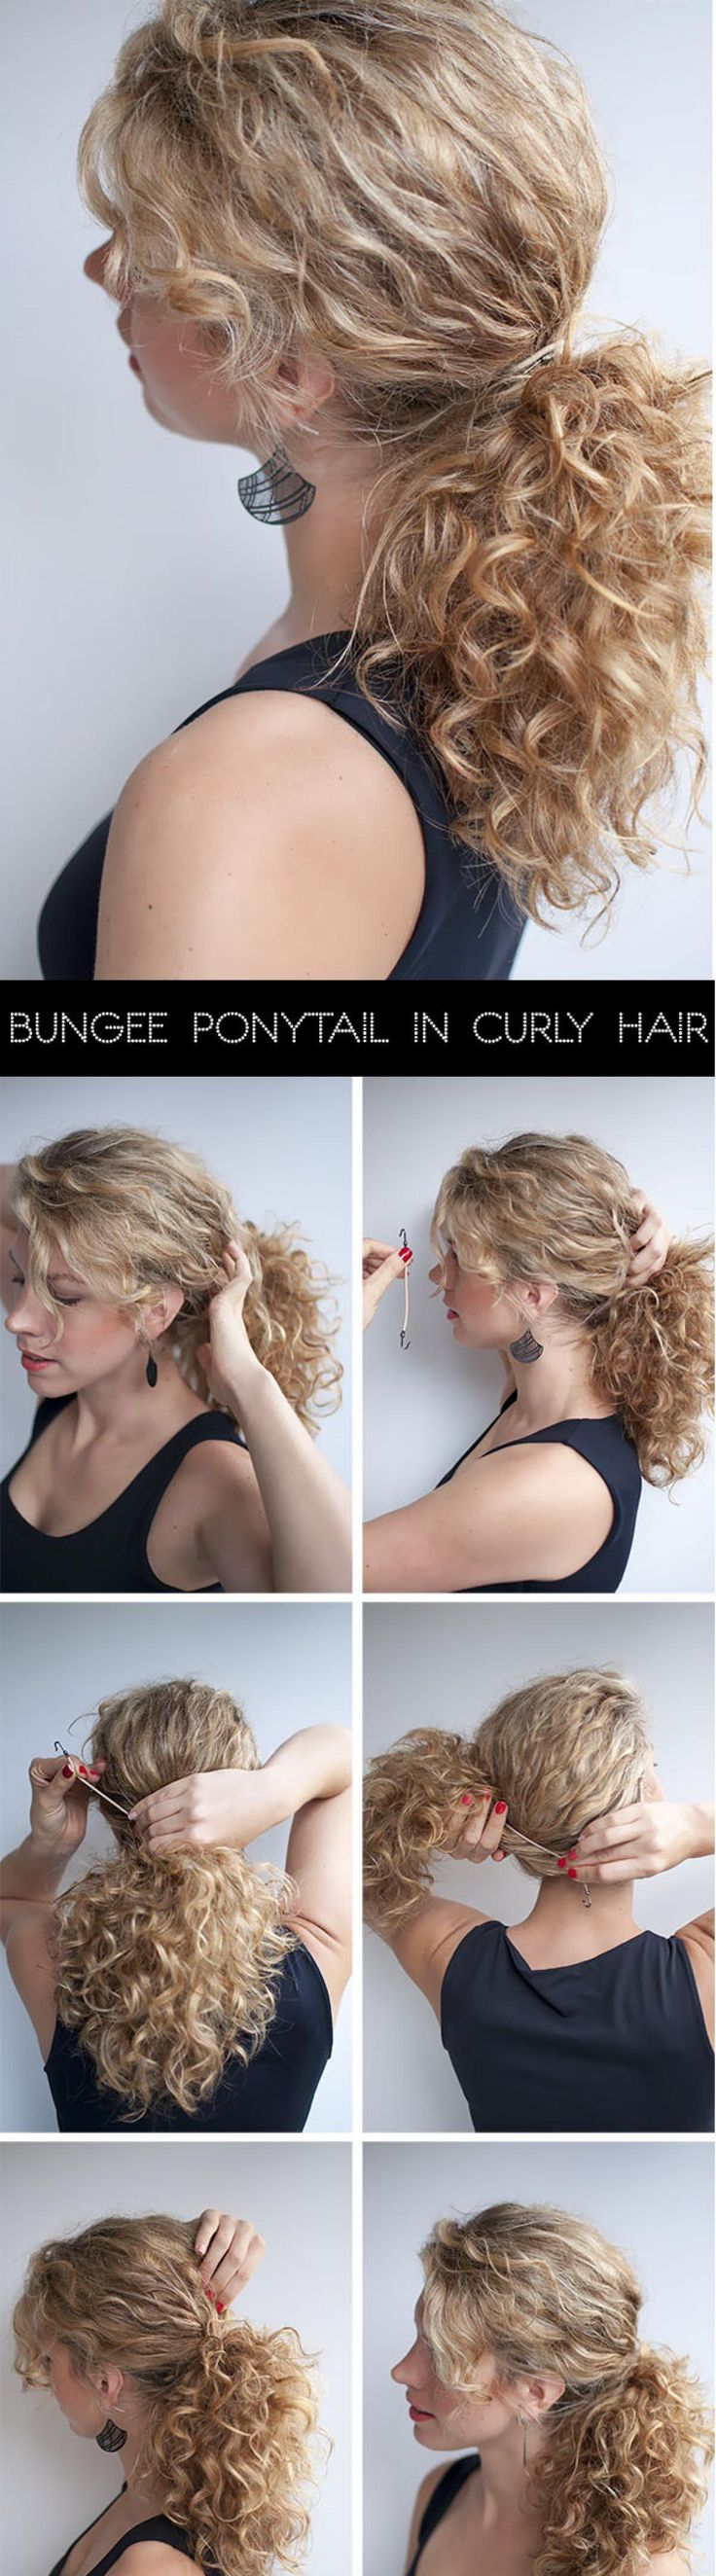 68 best Curly Hair Inspiration images on Pinterest